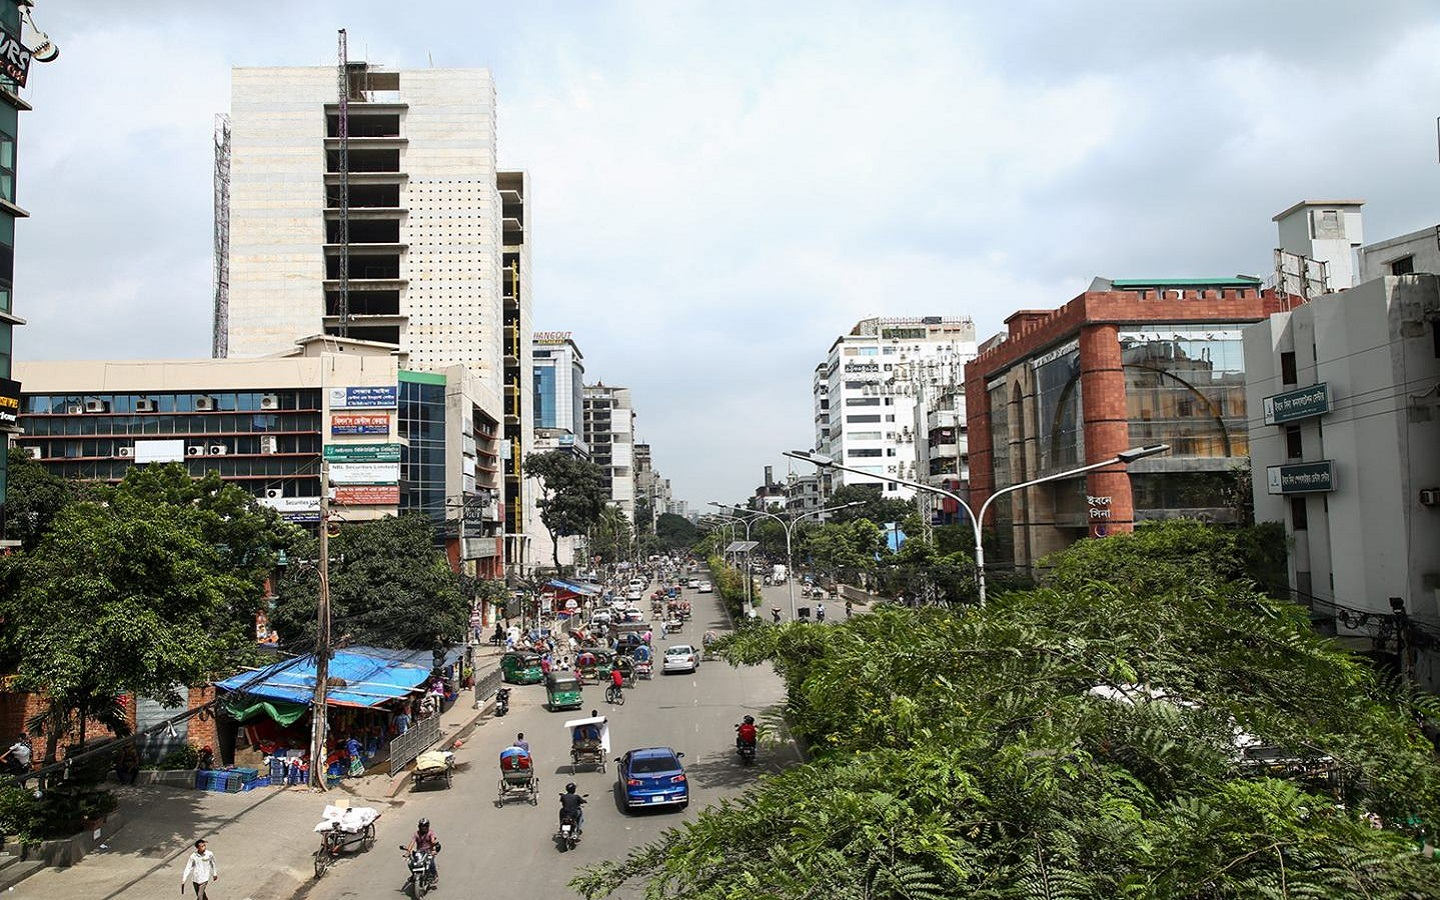 the road full of people and vehicle